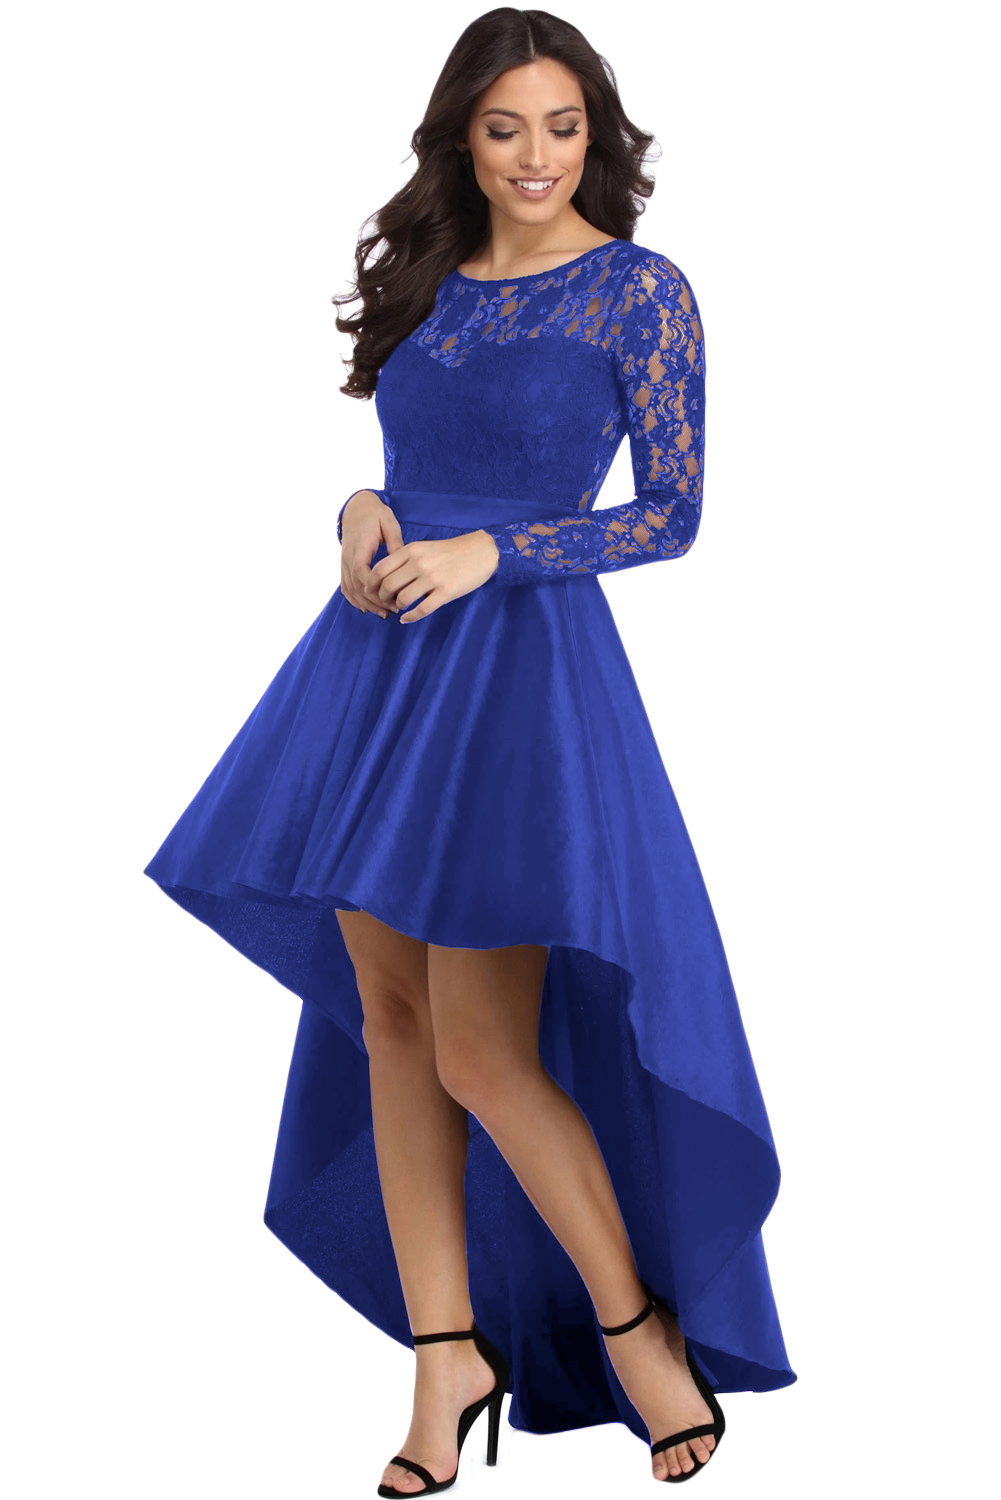 US$26.5 Zkess Royal Blue Long Sleeve Lace High Low Satin Prom Dress